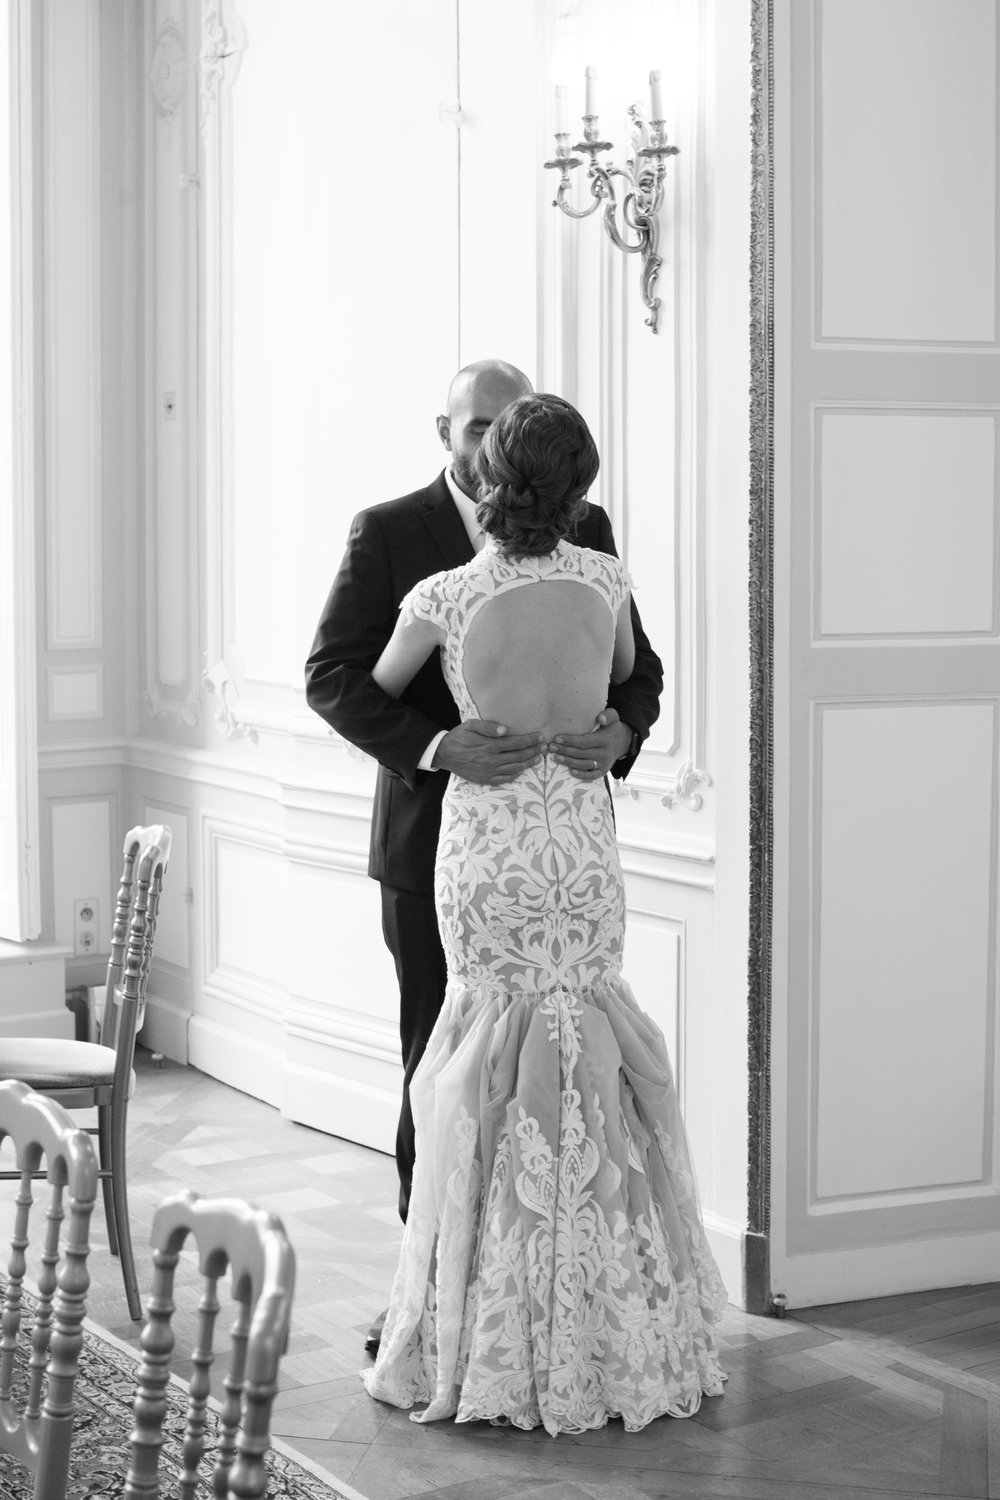 A Wedding in Paris — Every Day Parisian